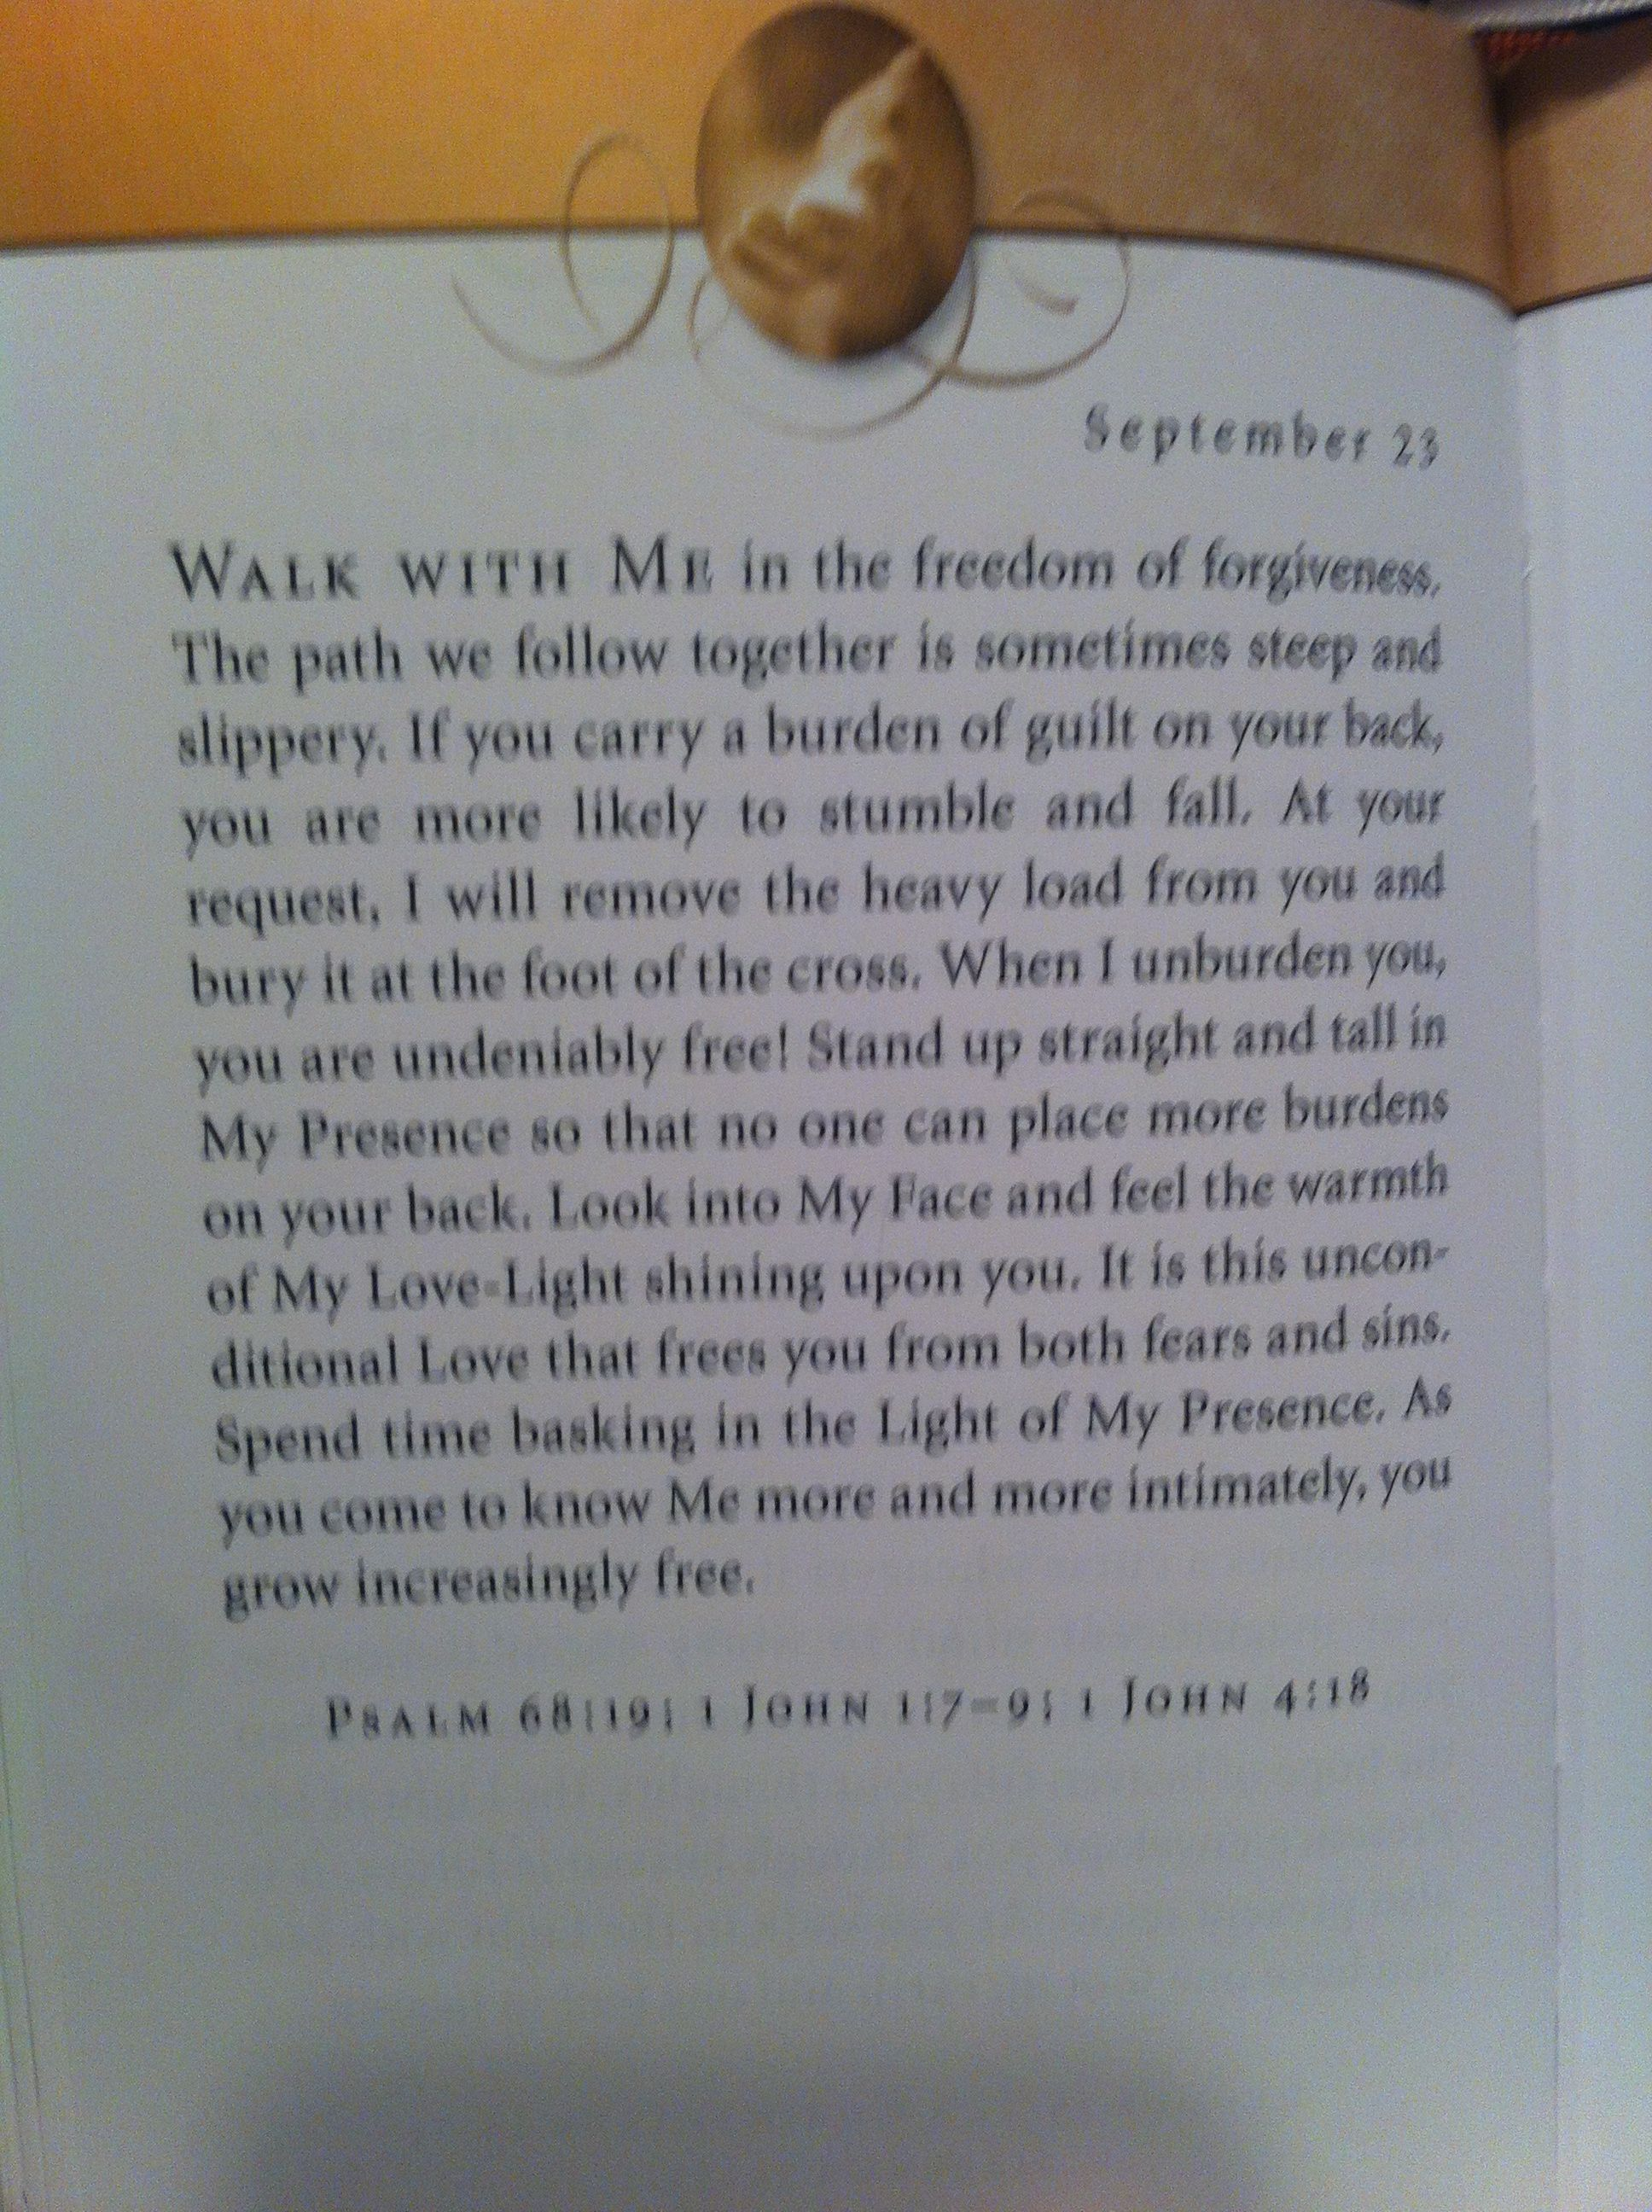 Jesus calling devotions for everyday